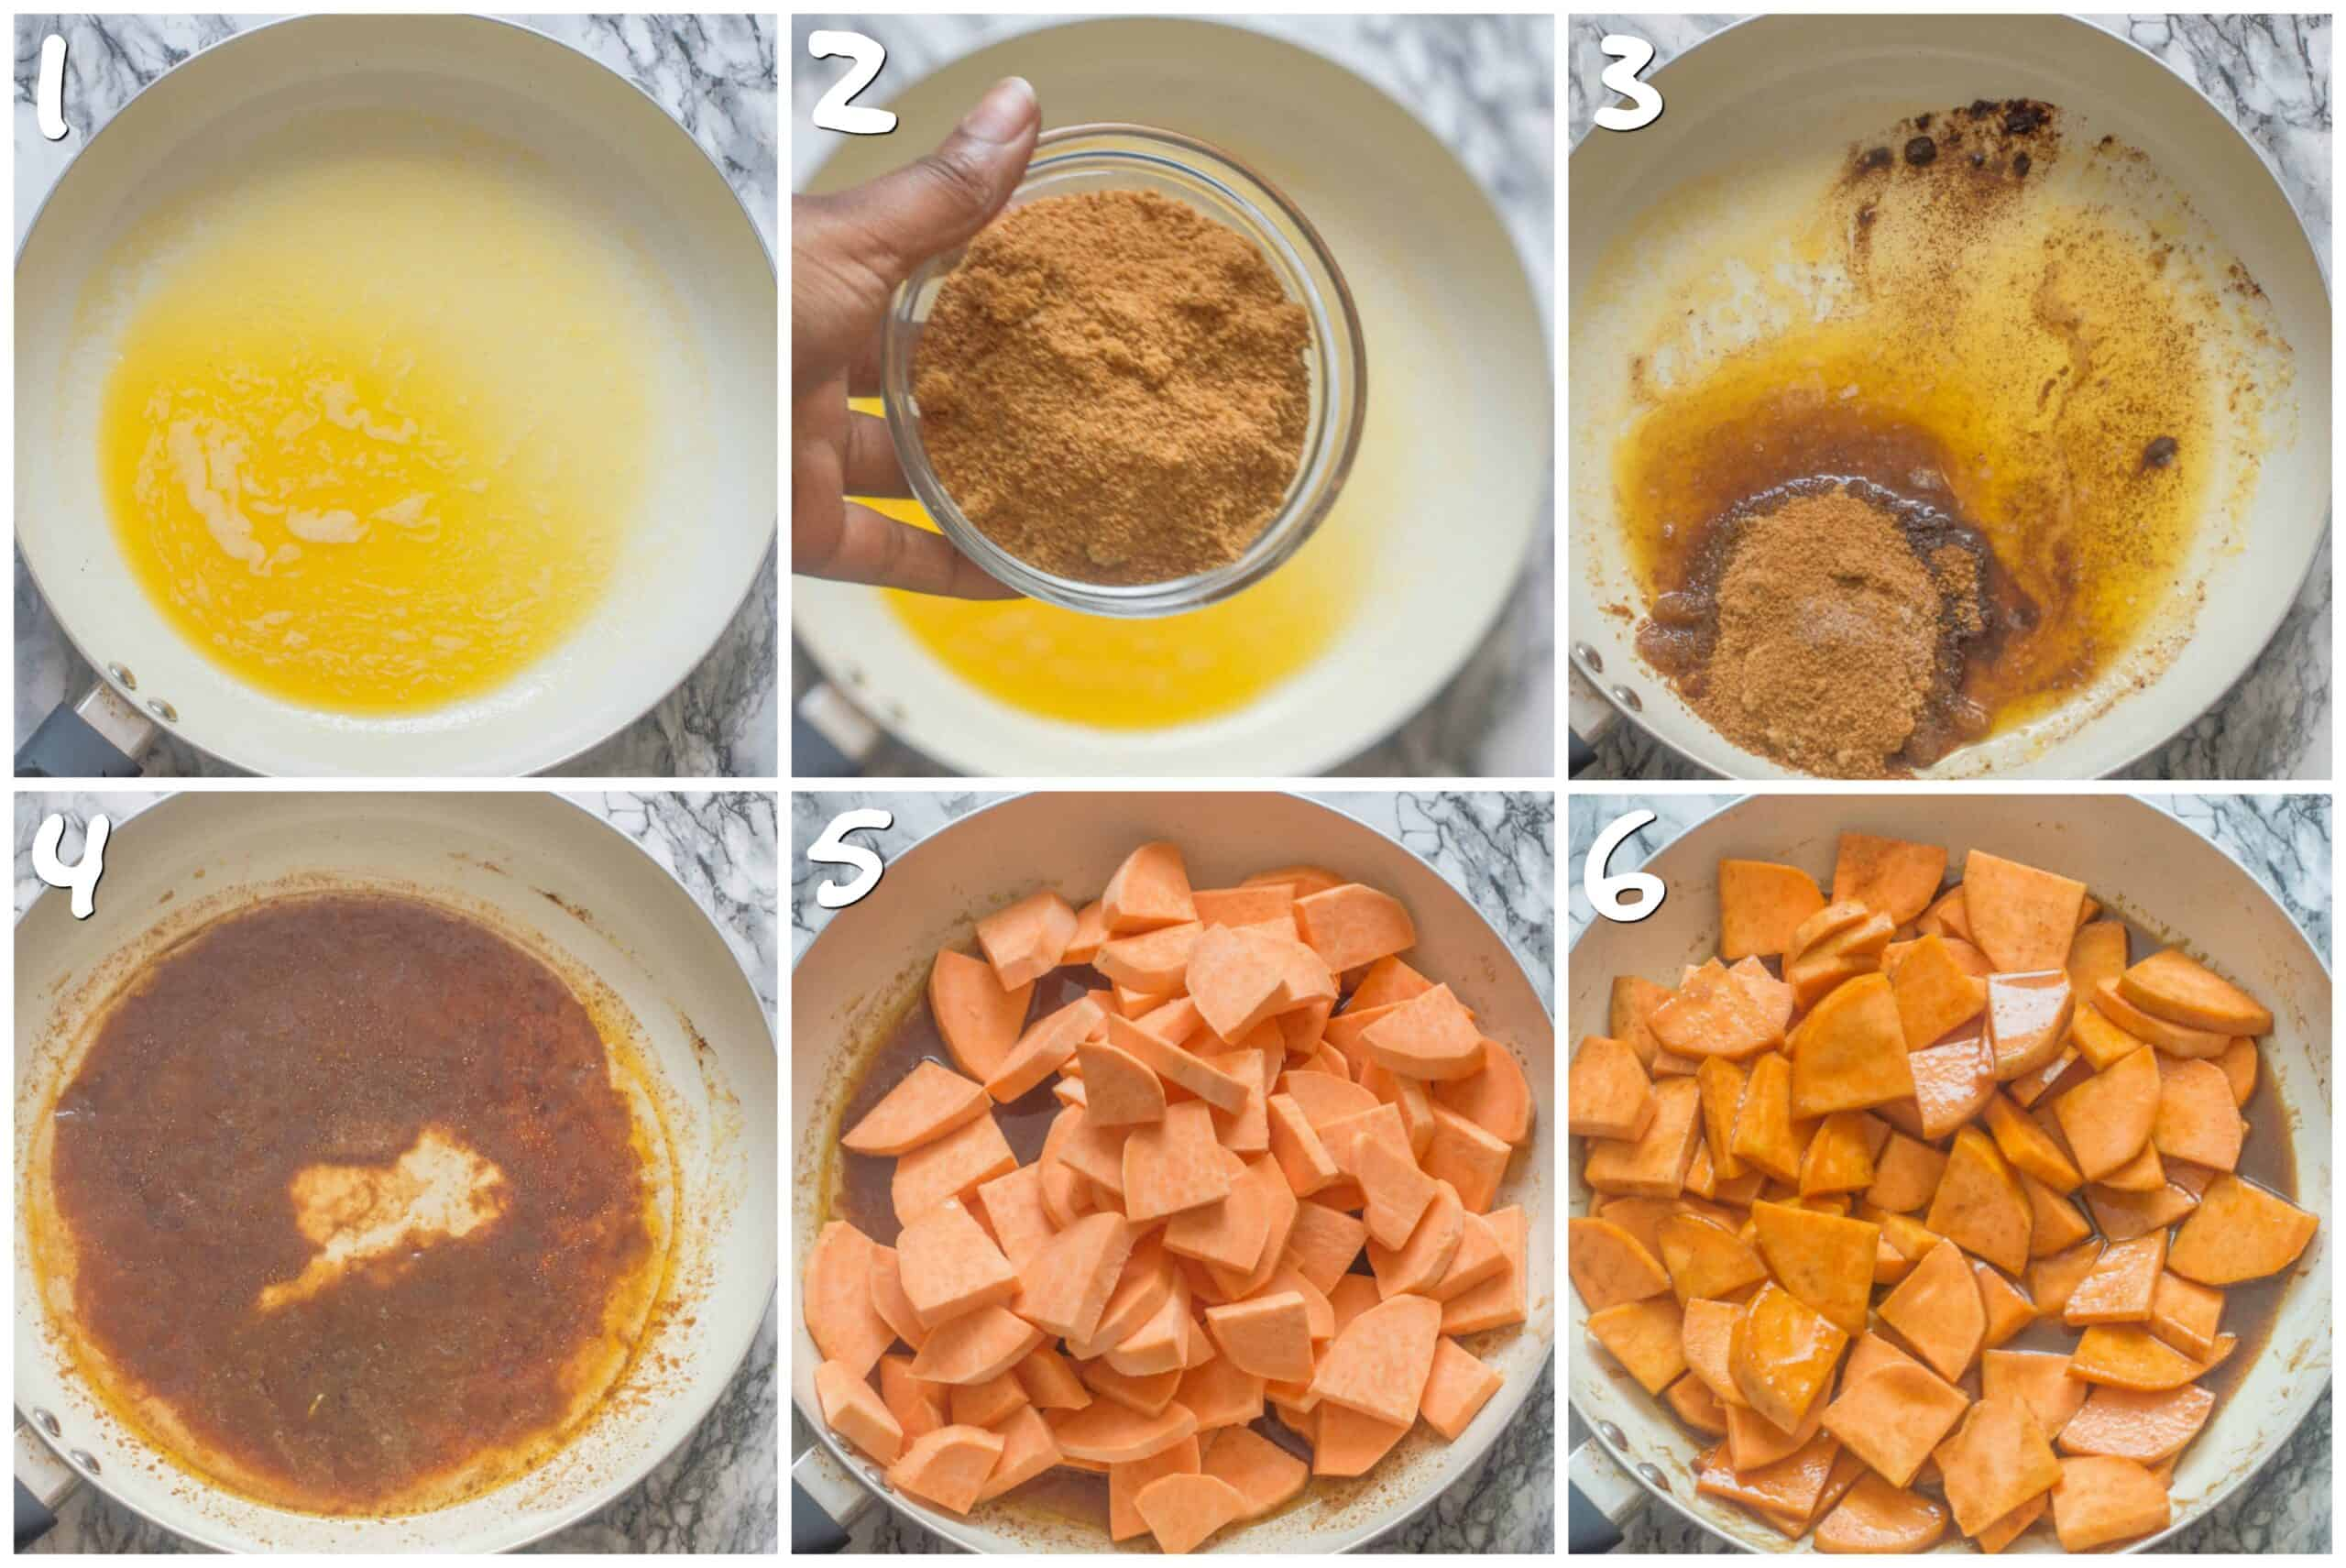 steps 1-6 stewing the sweet potatoes